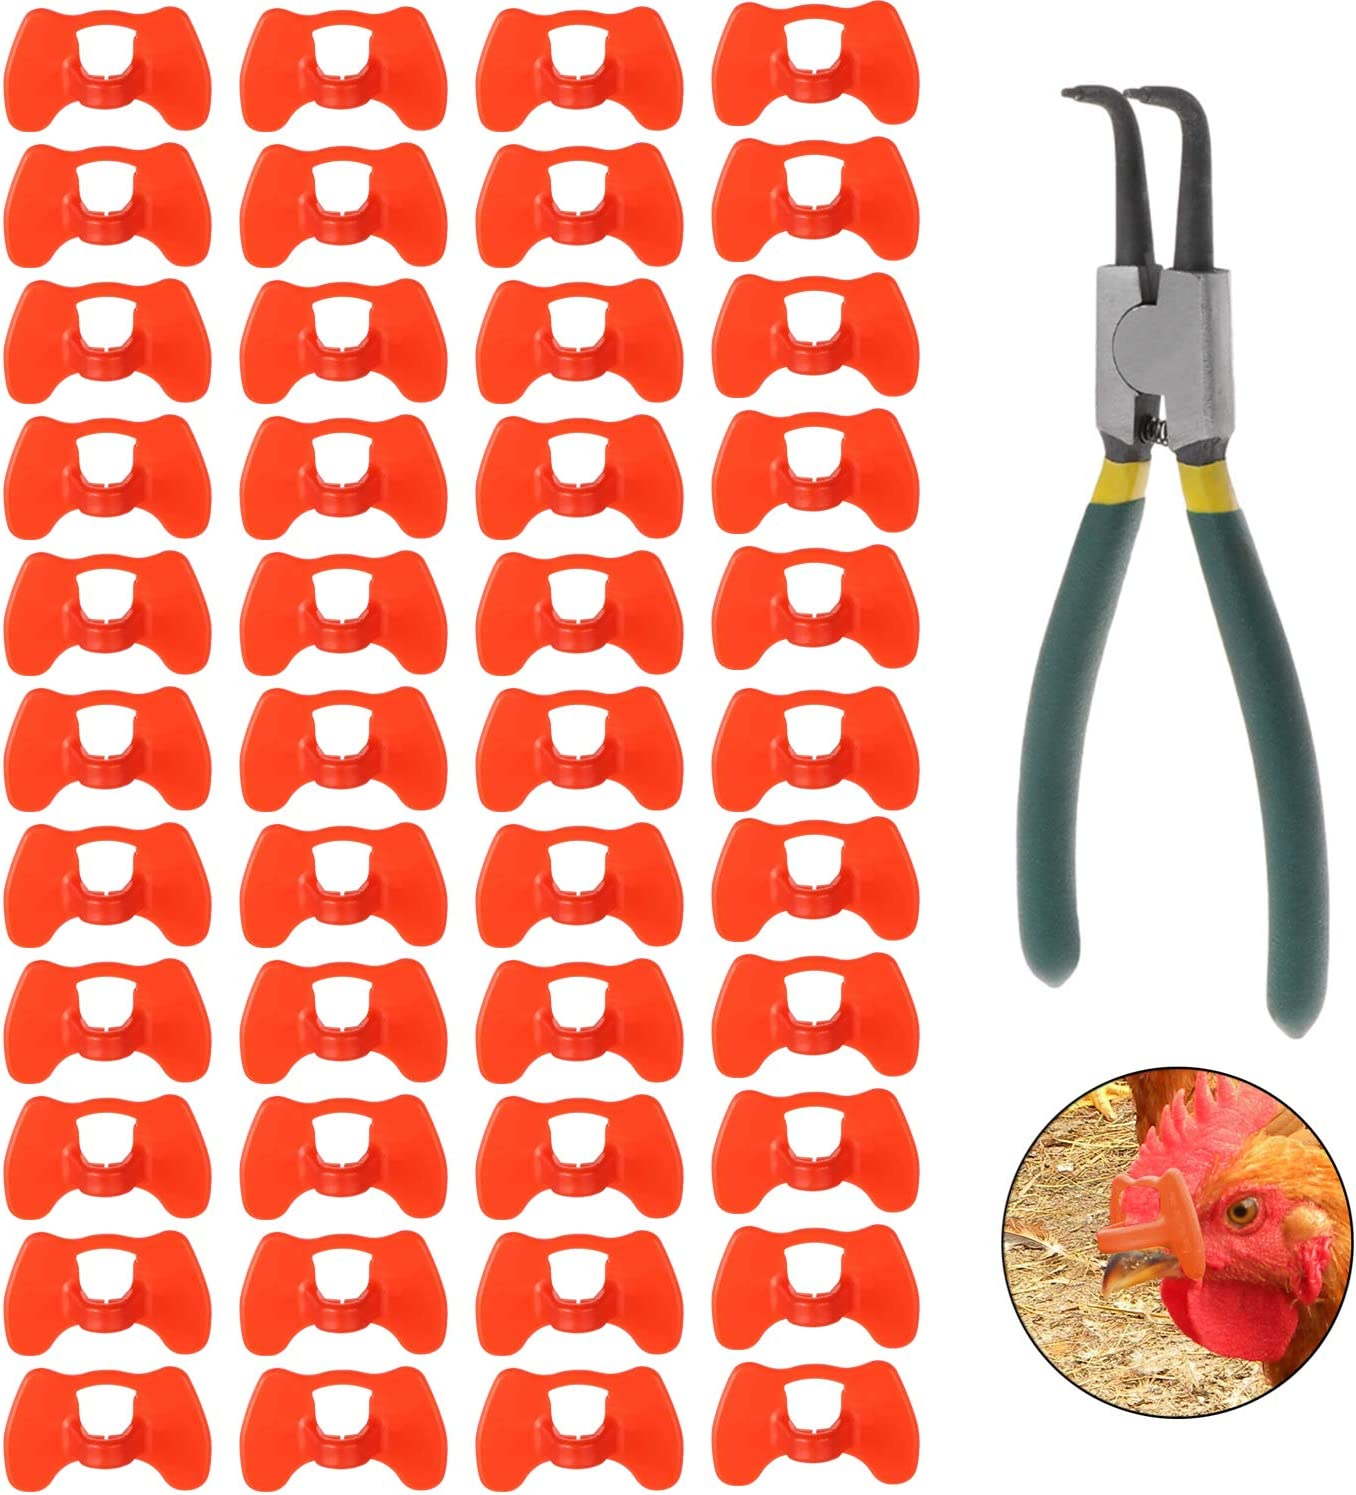 Lainrrew 41 Pcs Pinless Peepers with Set Poultry Charlotte Mall Pliers Genuine Blinder